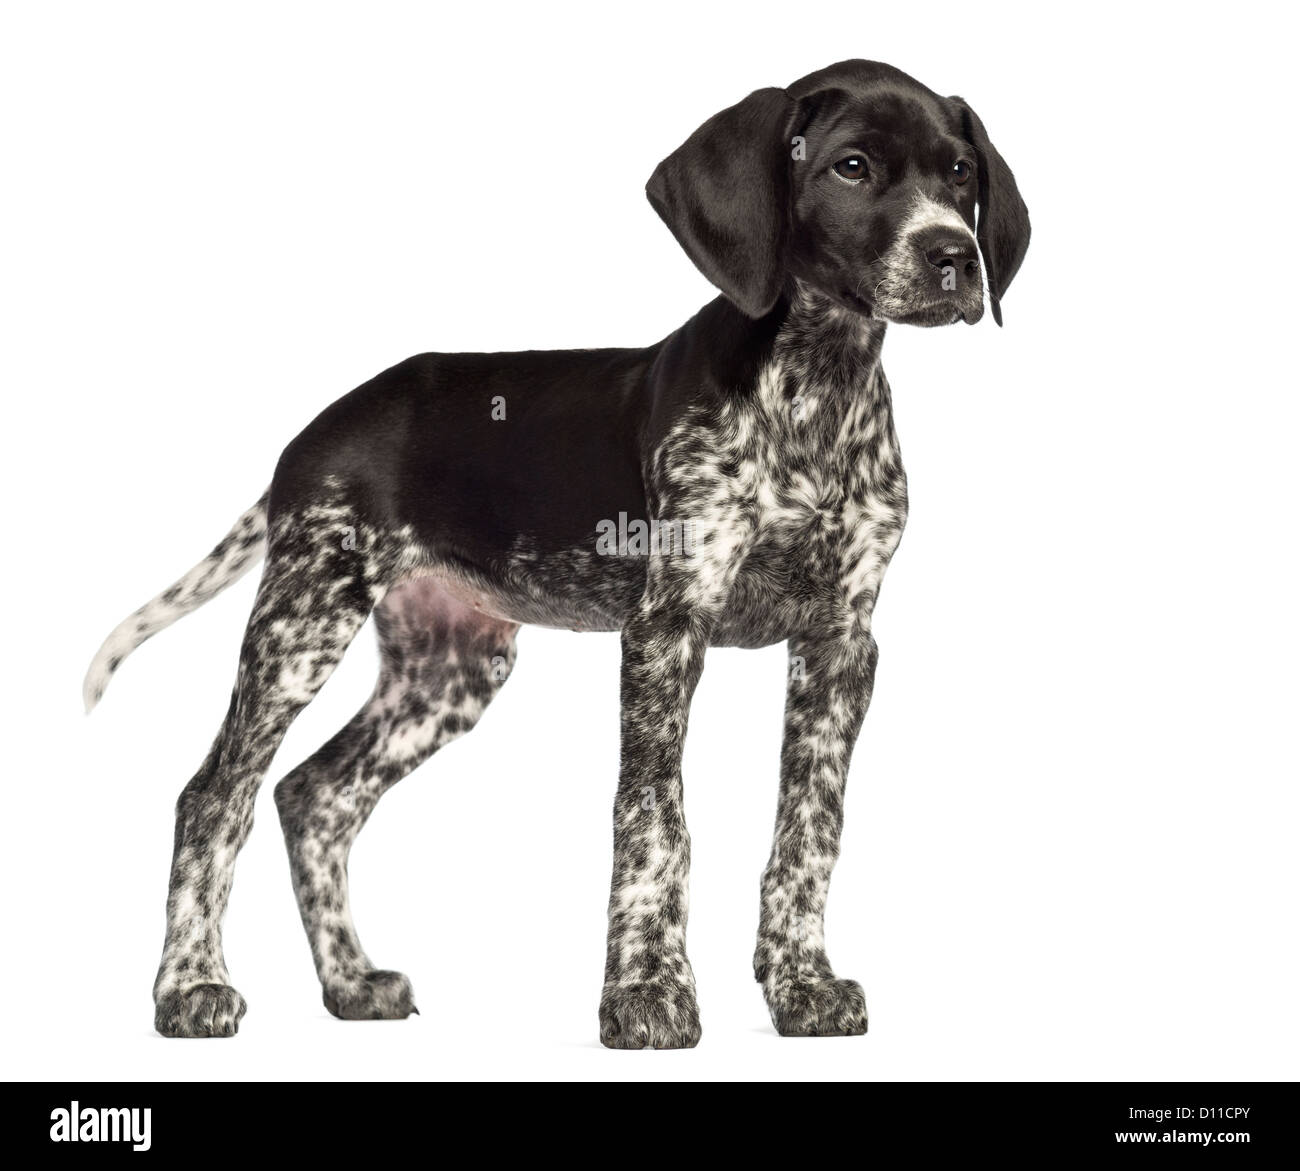 German Wirehaired Pointer Blank Backround Data Wiring Free Body Diagram Moment Http Wwwarchvirginiaedu Km6e Arch324 Cut Out Stock Images Pictures Alamy Rh Com